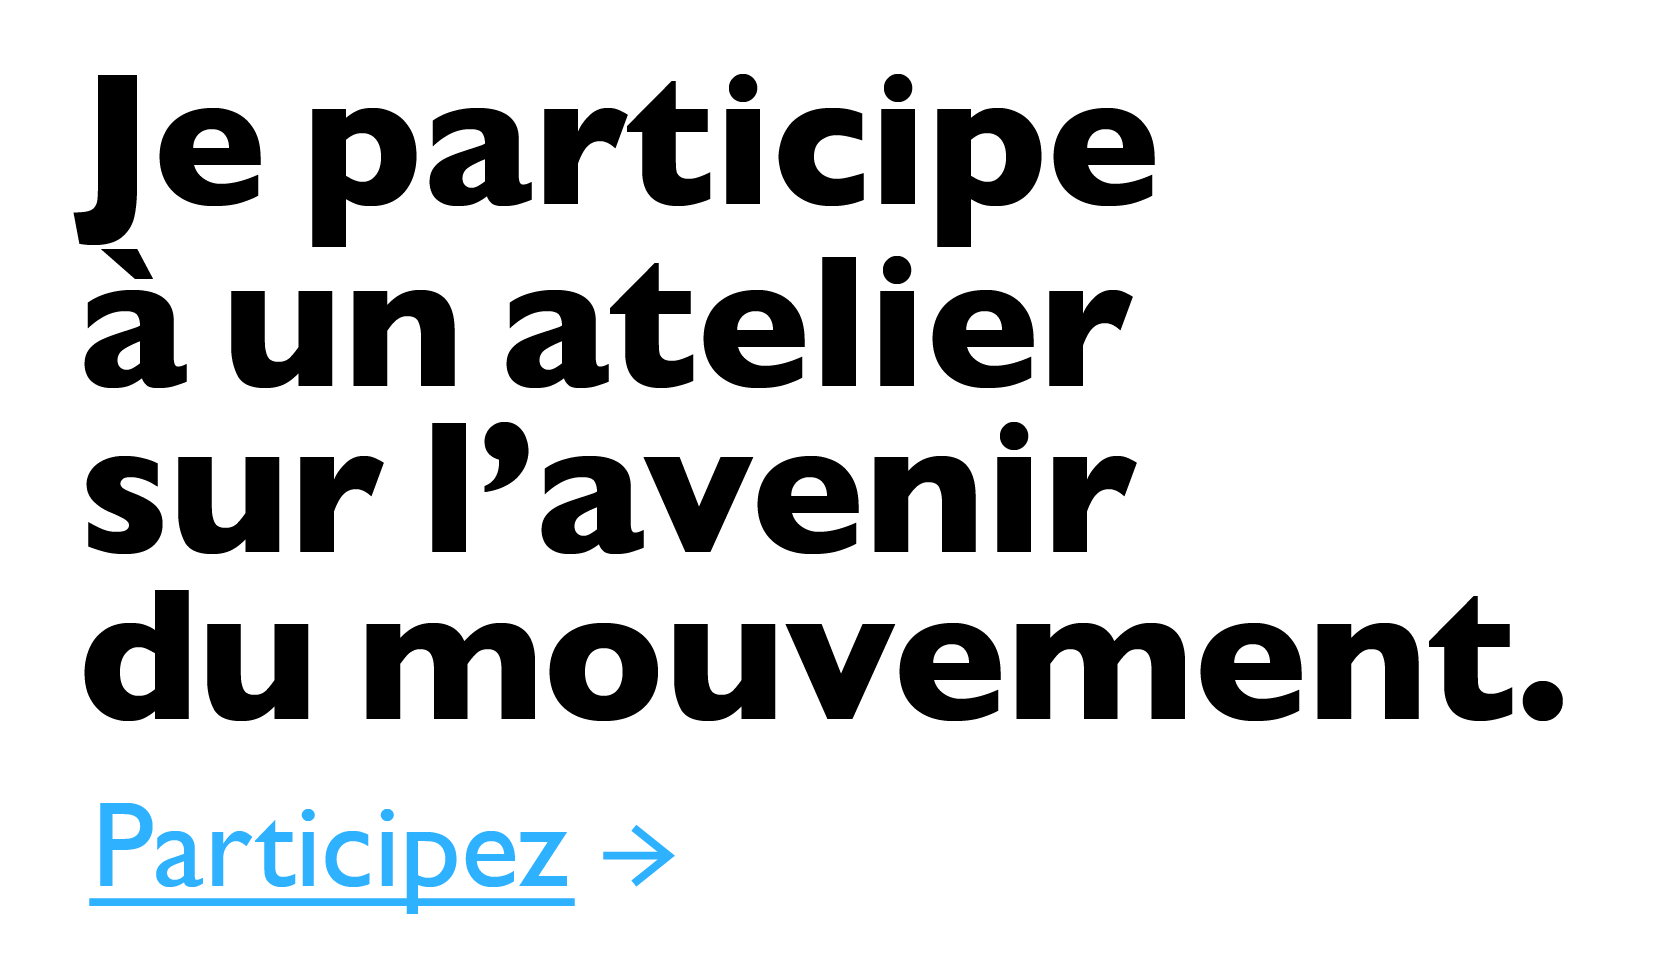 Participer à l'avenir du mouvement